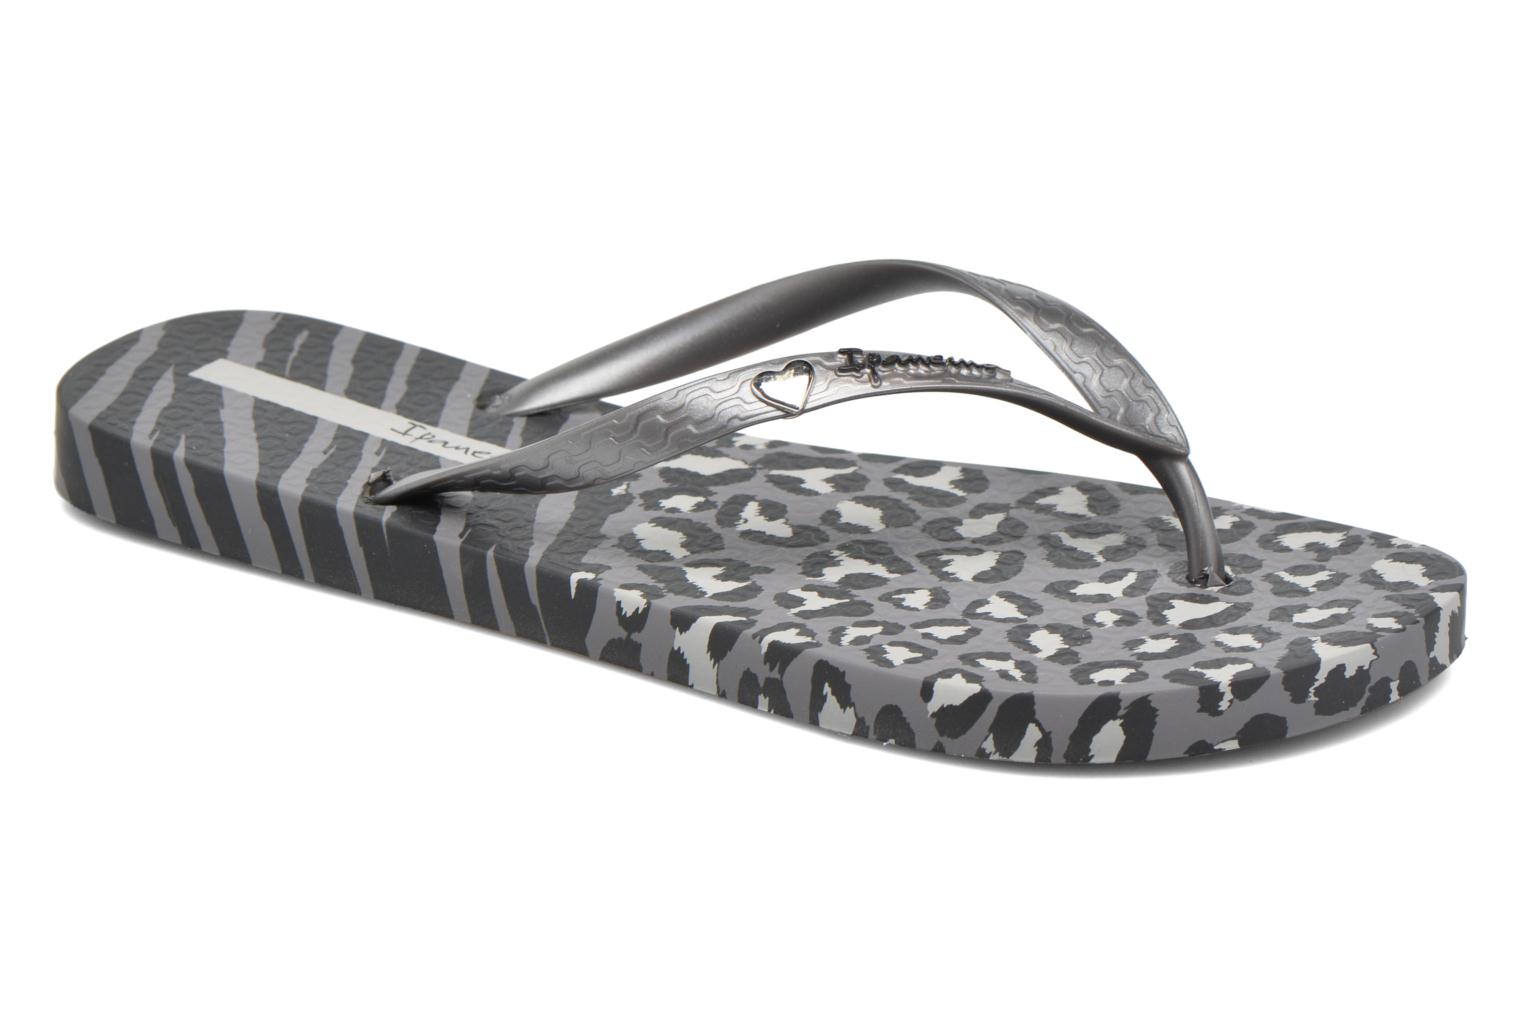 Marques Chaussure femme Ipanema femme Animal Print II Grey/silver